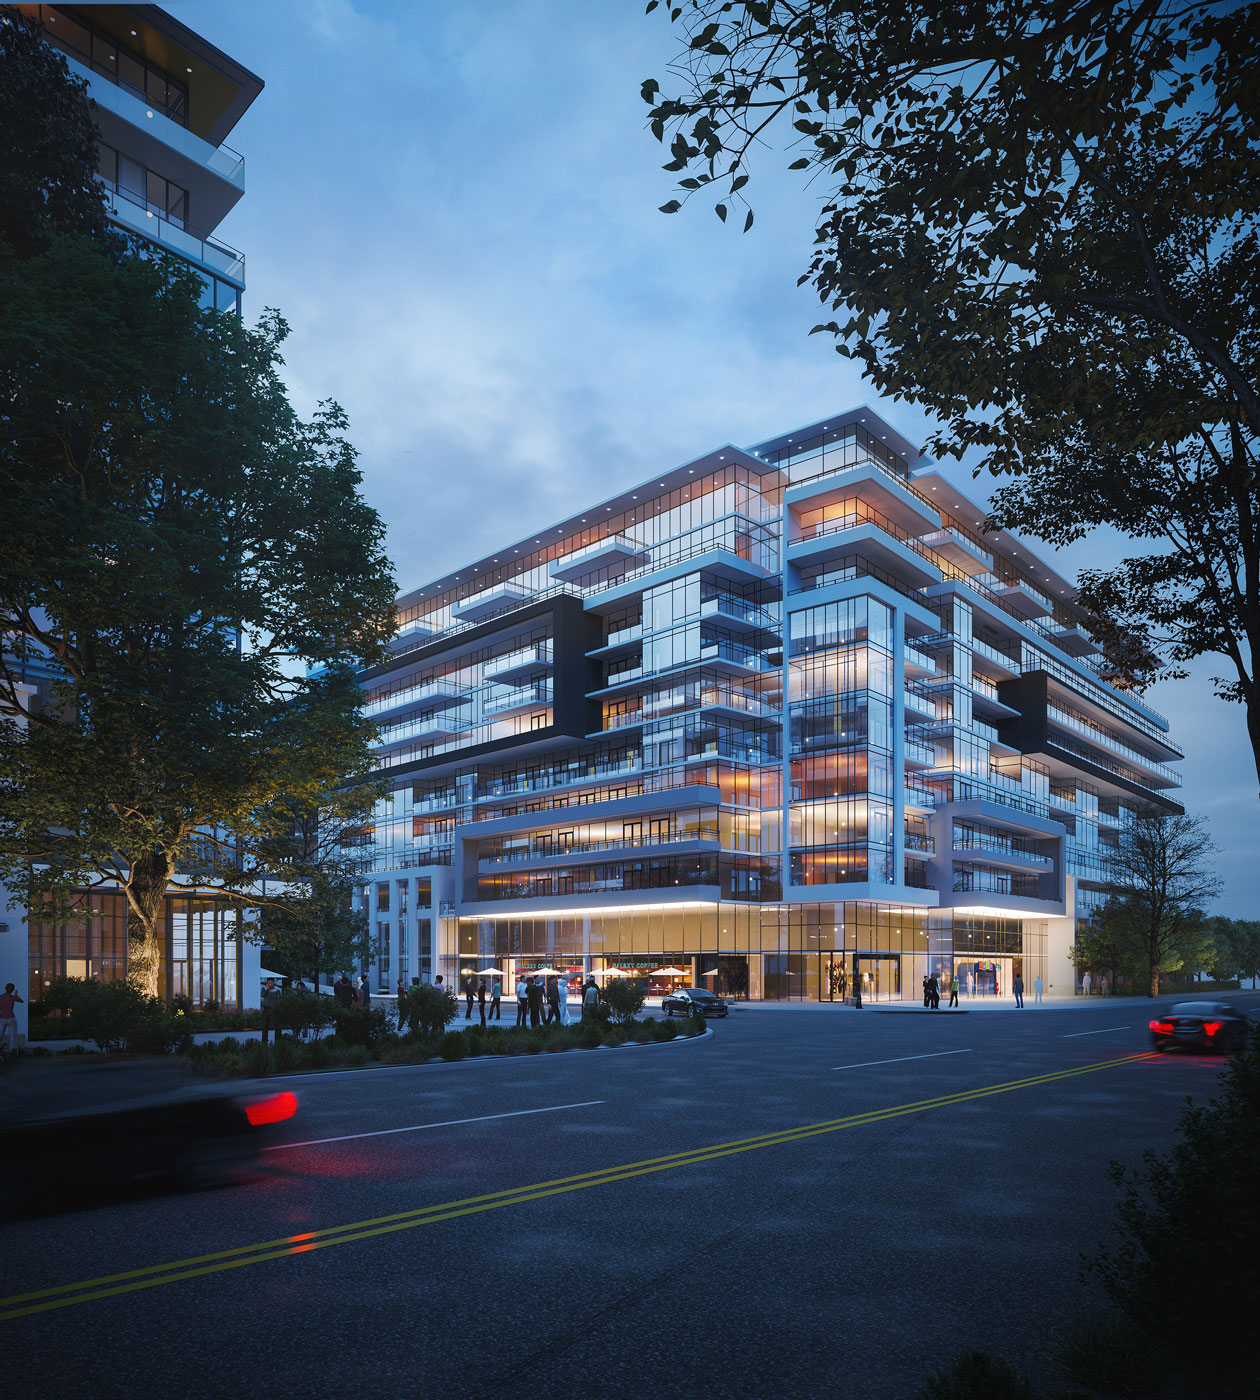 Rendering of Distrikt Trailside 2.0 Condos at night.